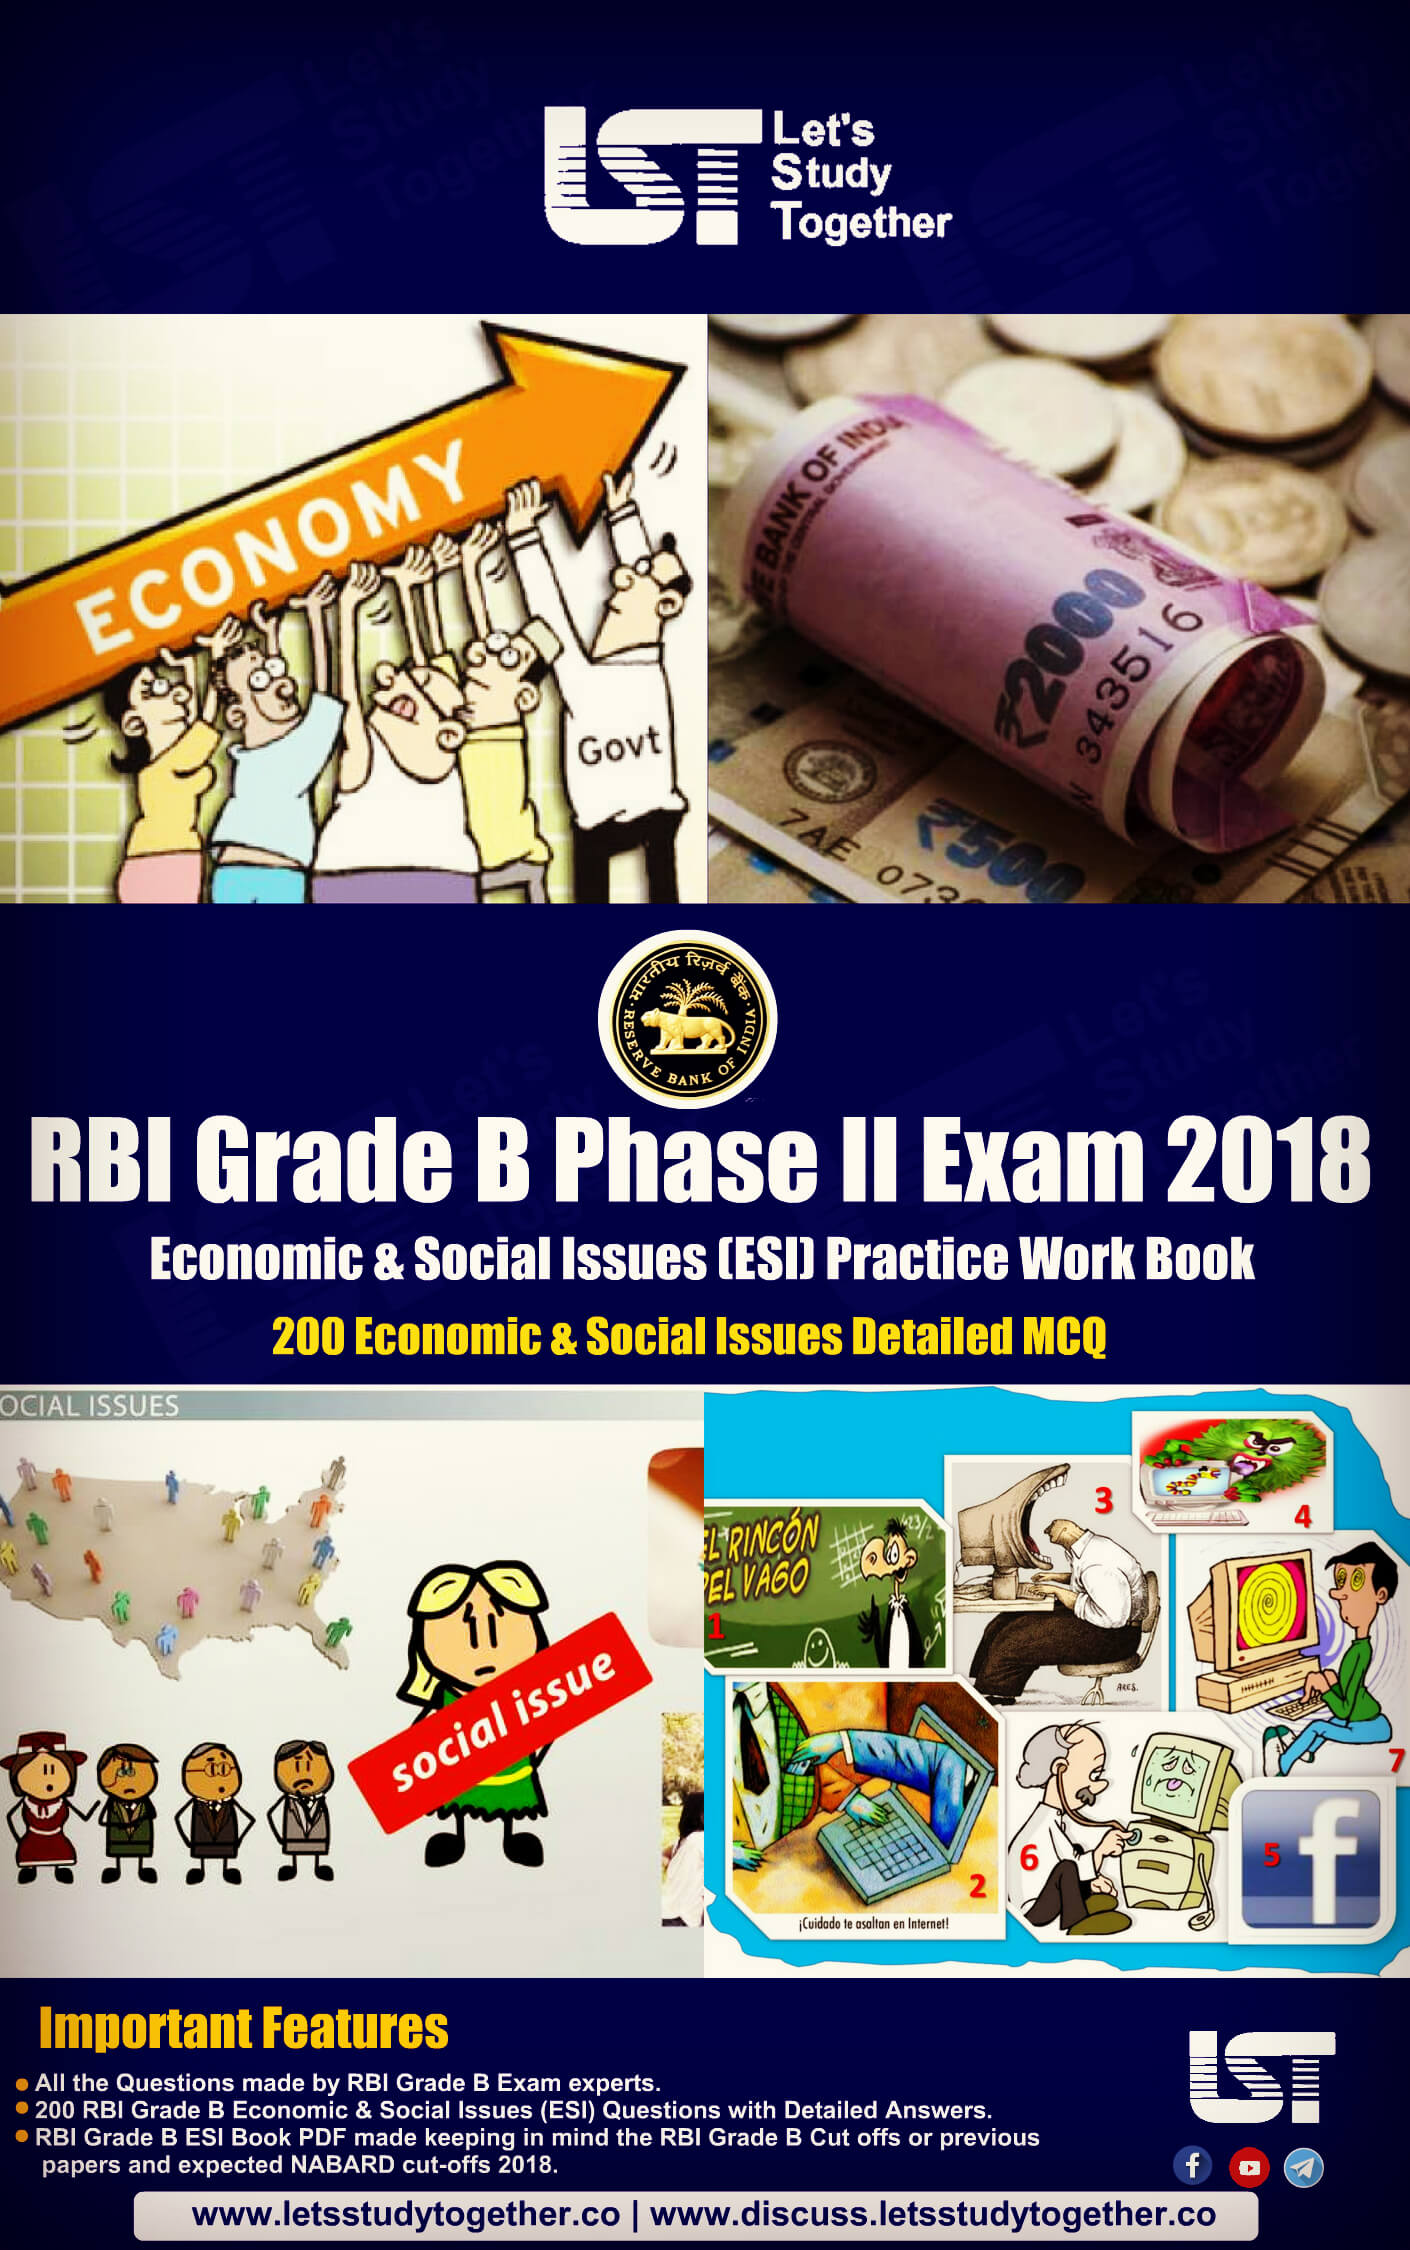 RBI Grade B Economic & Social Issues (ESI) Practice Work Book